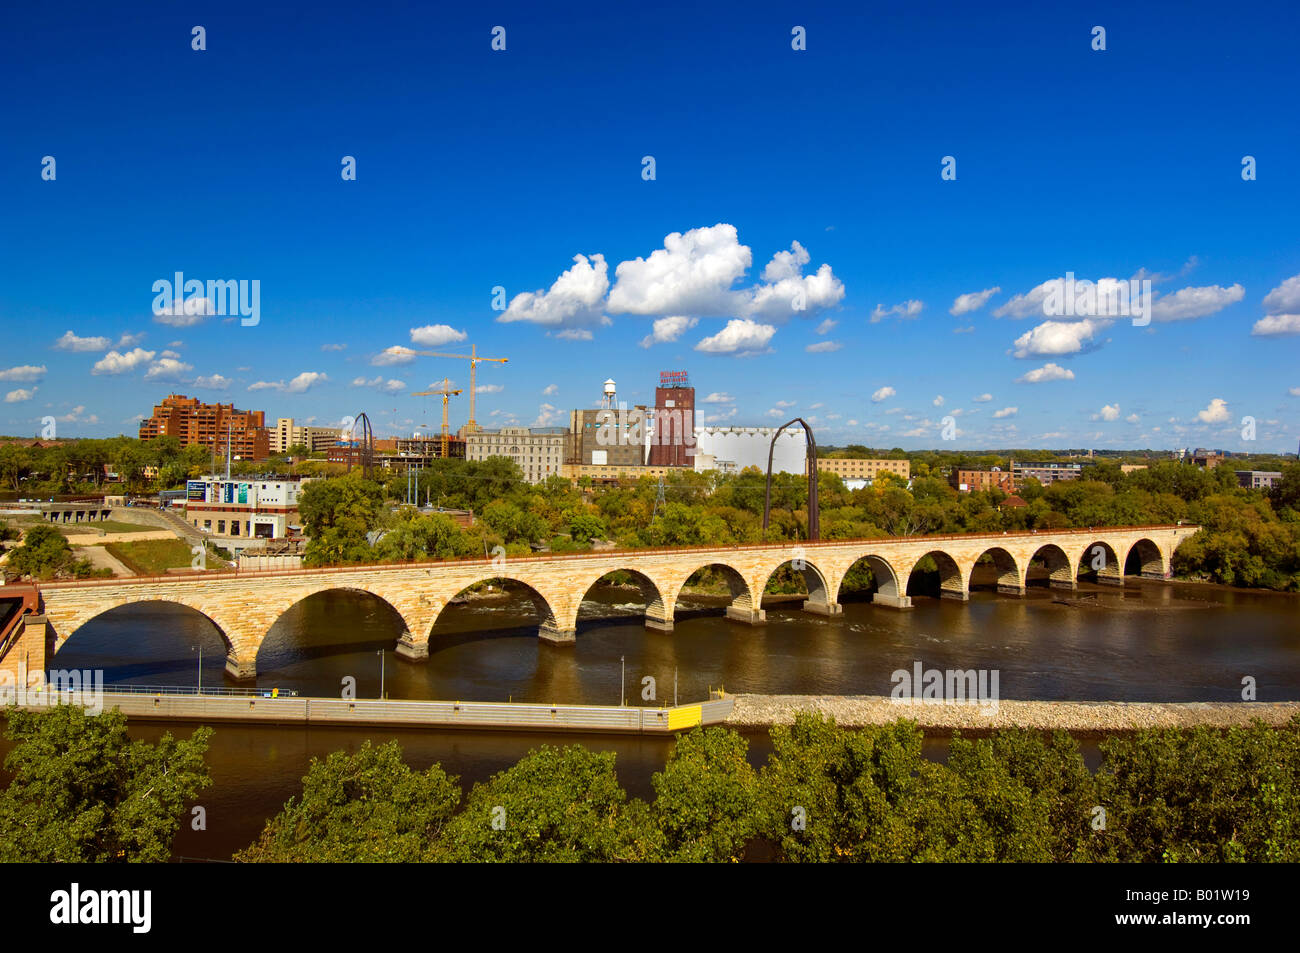 View of the Stone Arch Bridge across the Mississippi River from the Guthrie Theater Minneapolis MN - Stock Image